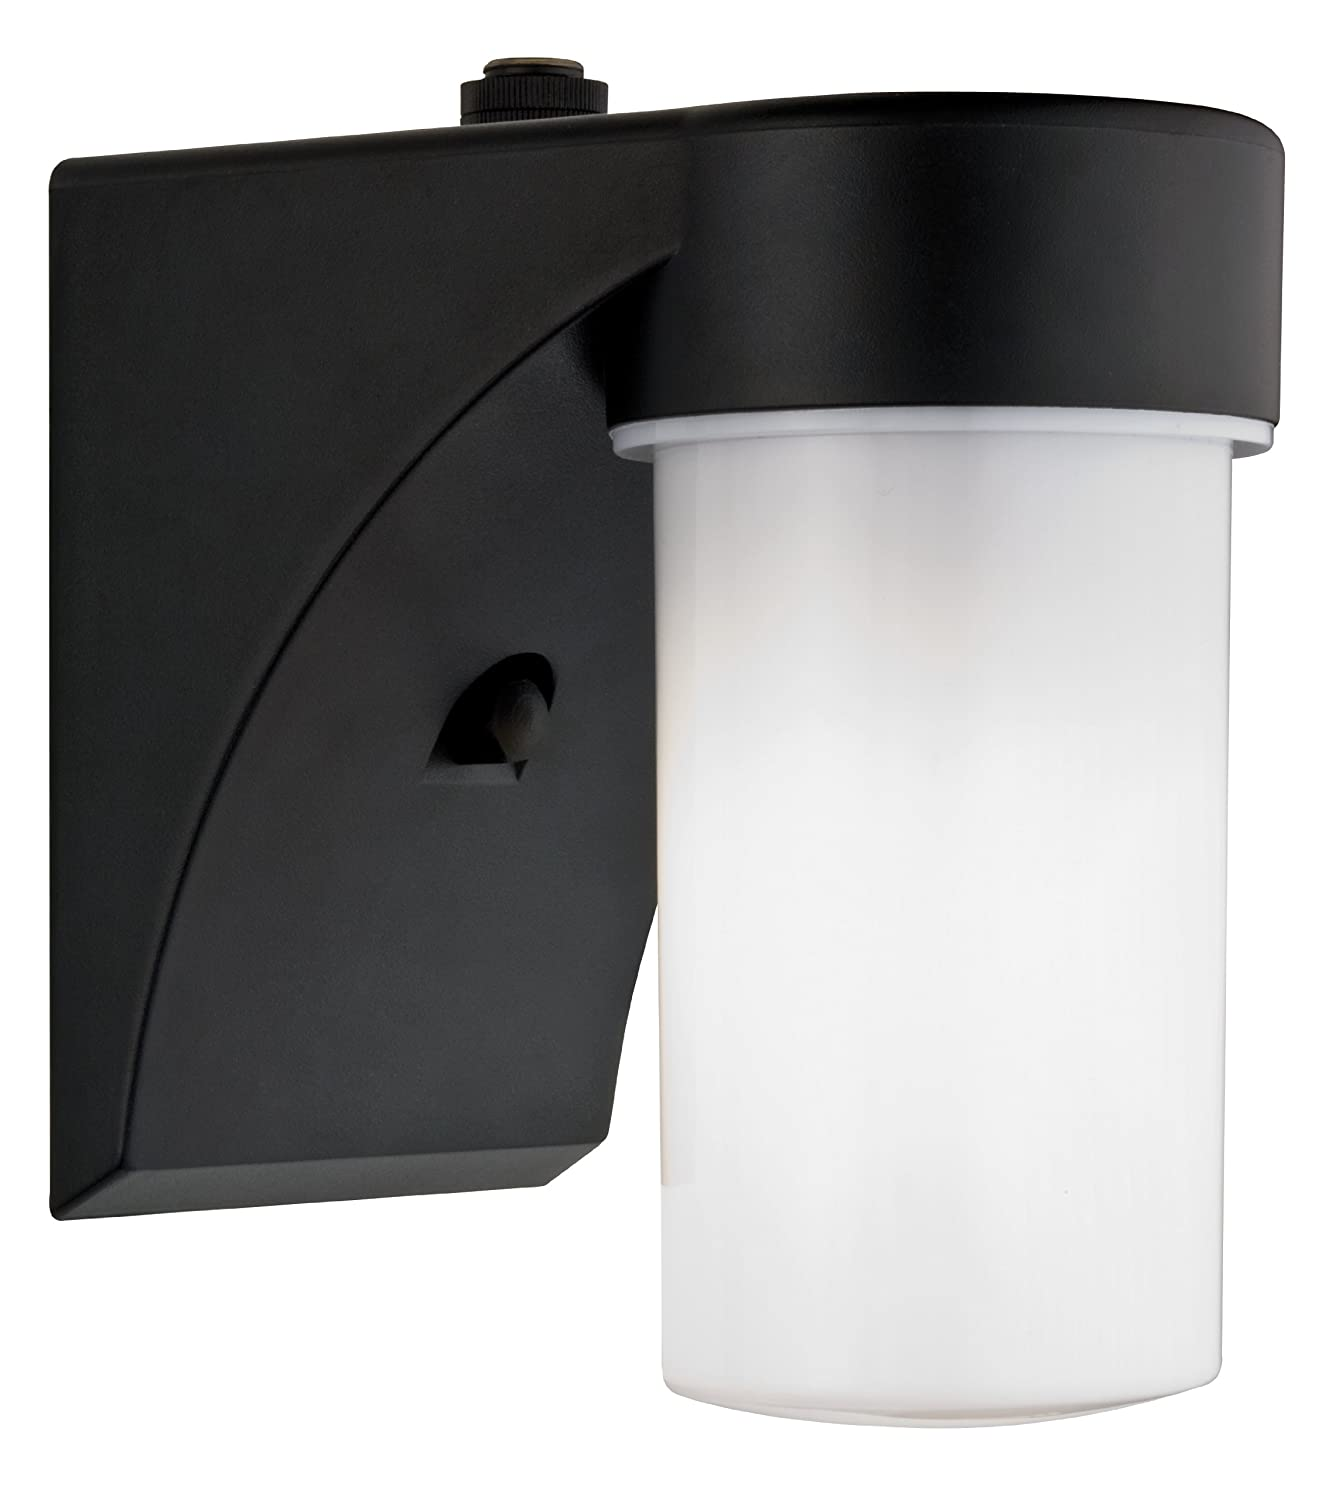 Lithonia Lighting OSC 13F 120 P LP BL M6 Outdoor Cylinder Wall Light with Dusk to Dawn Photocell Black - Wall Porch Lights - Amazon.com  sc 1 st  Amazon.com : outdoor wall light photocell - www.canuckmediamonitor.org